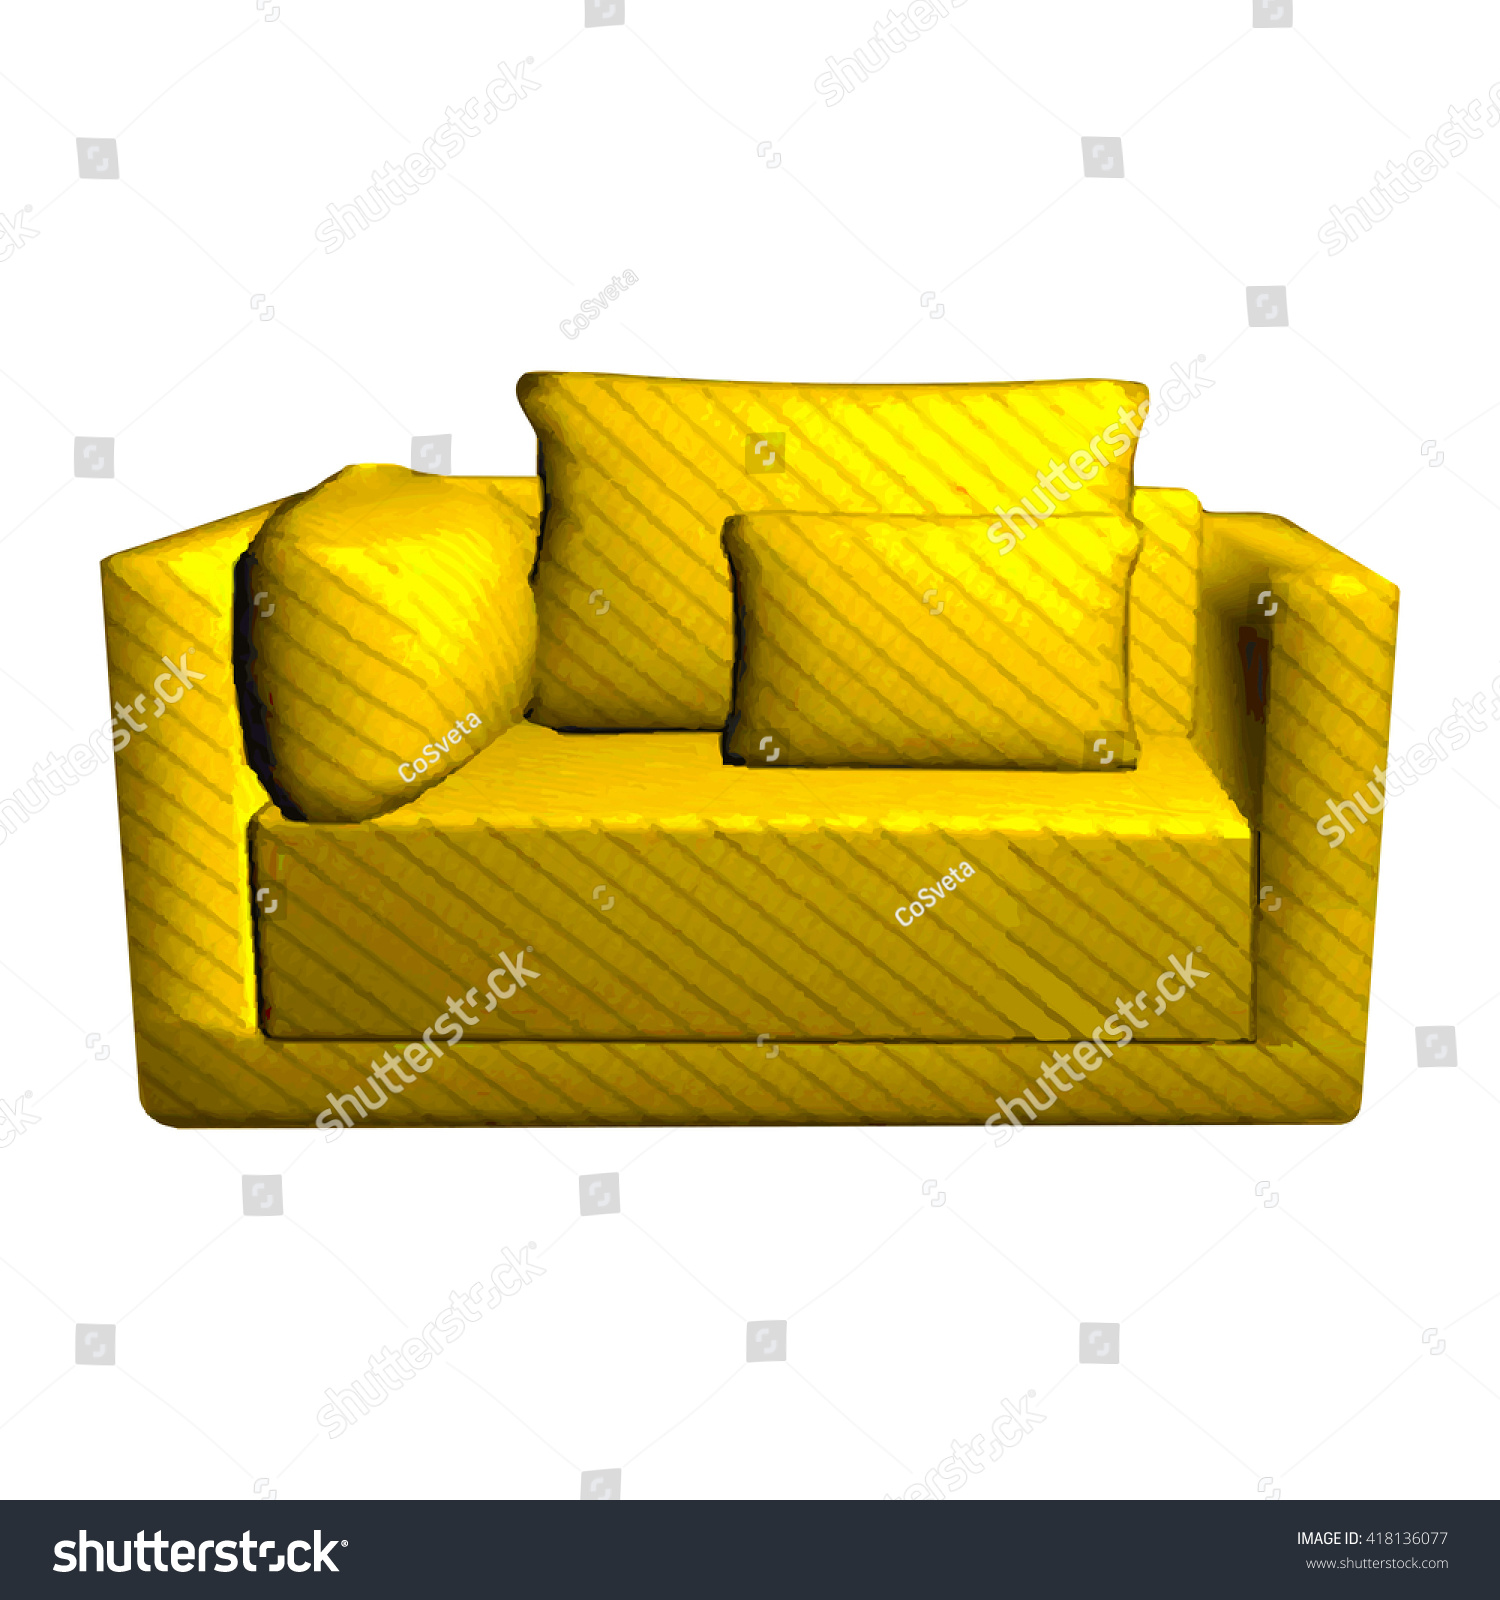 Cushioned Yellow Leather Sofa 3d: Vector Leather Yellow Sofa Pillows Isolated Stock Vector